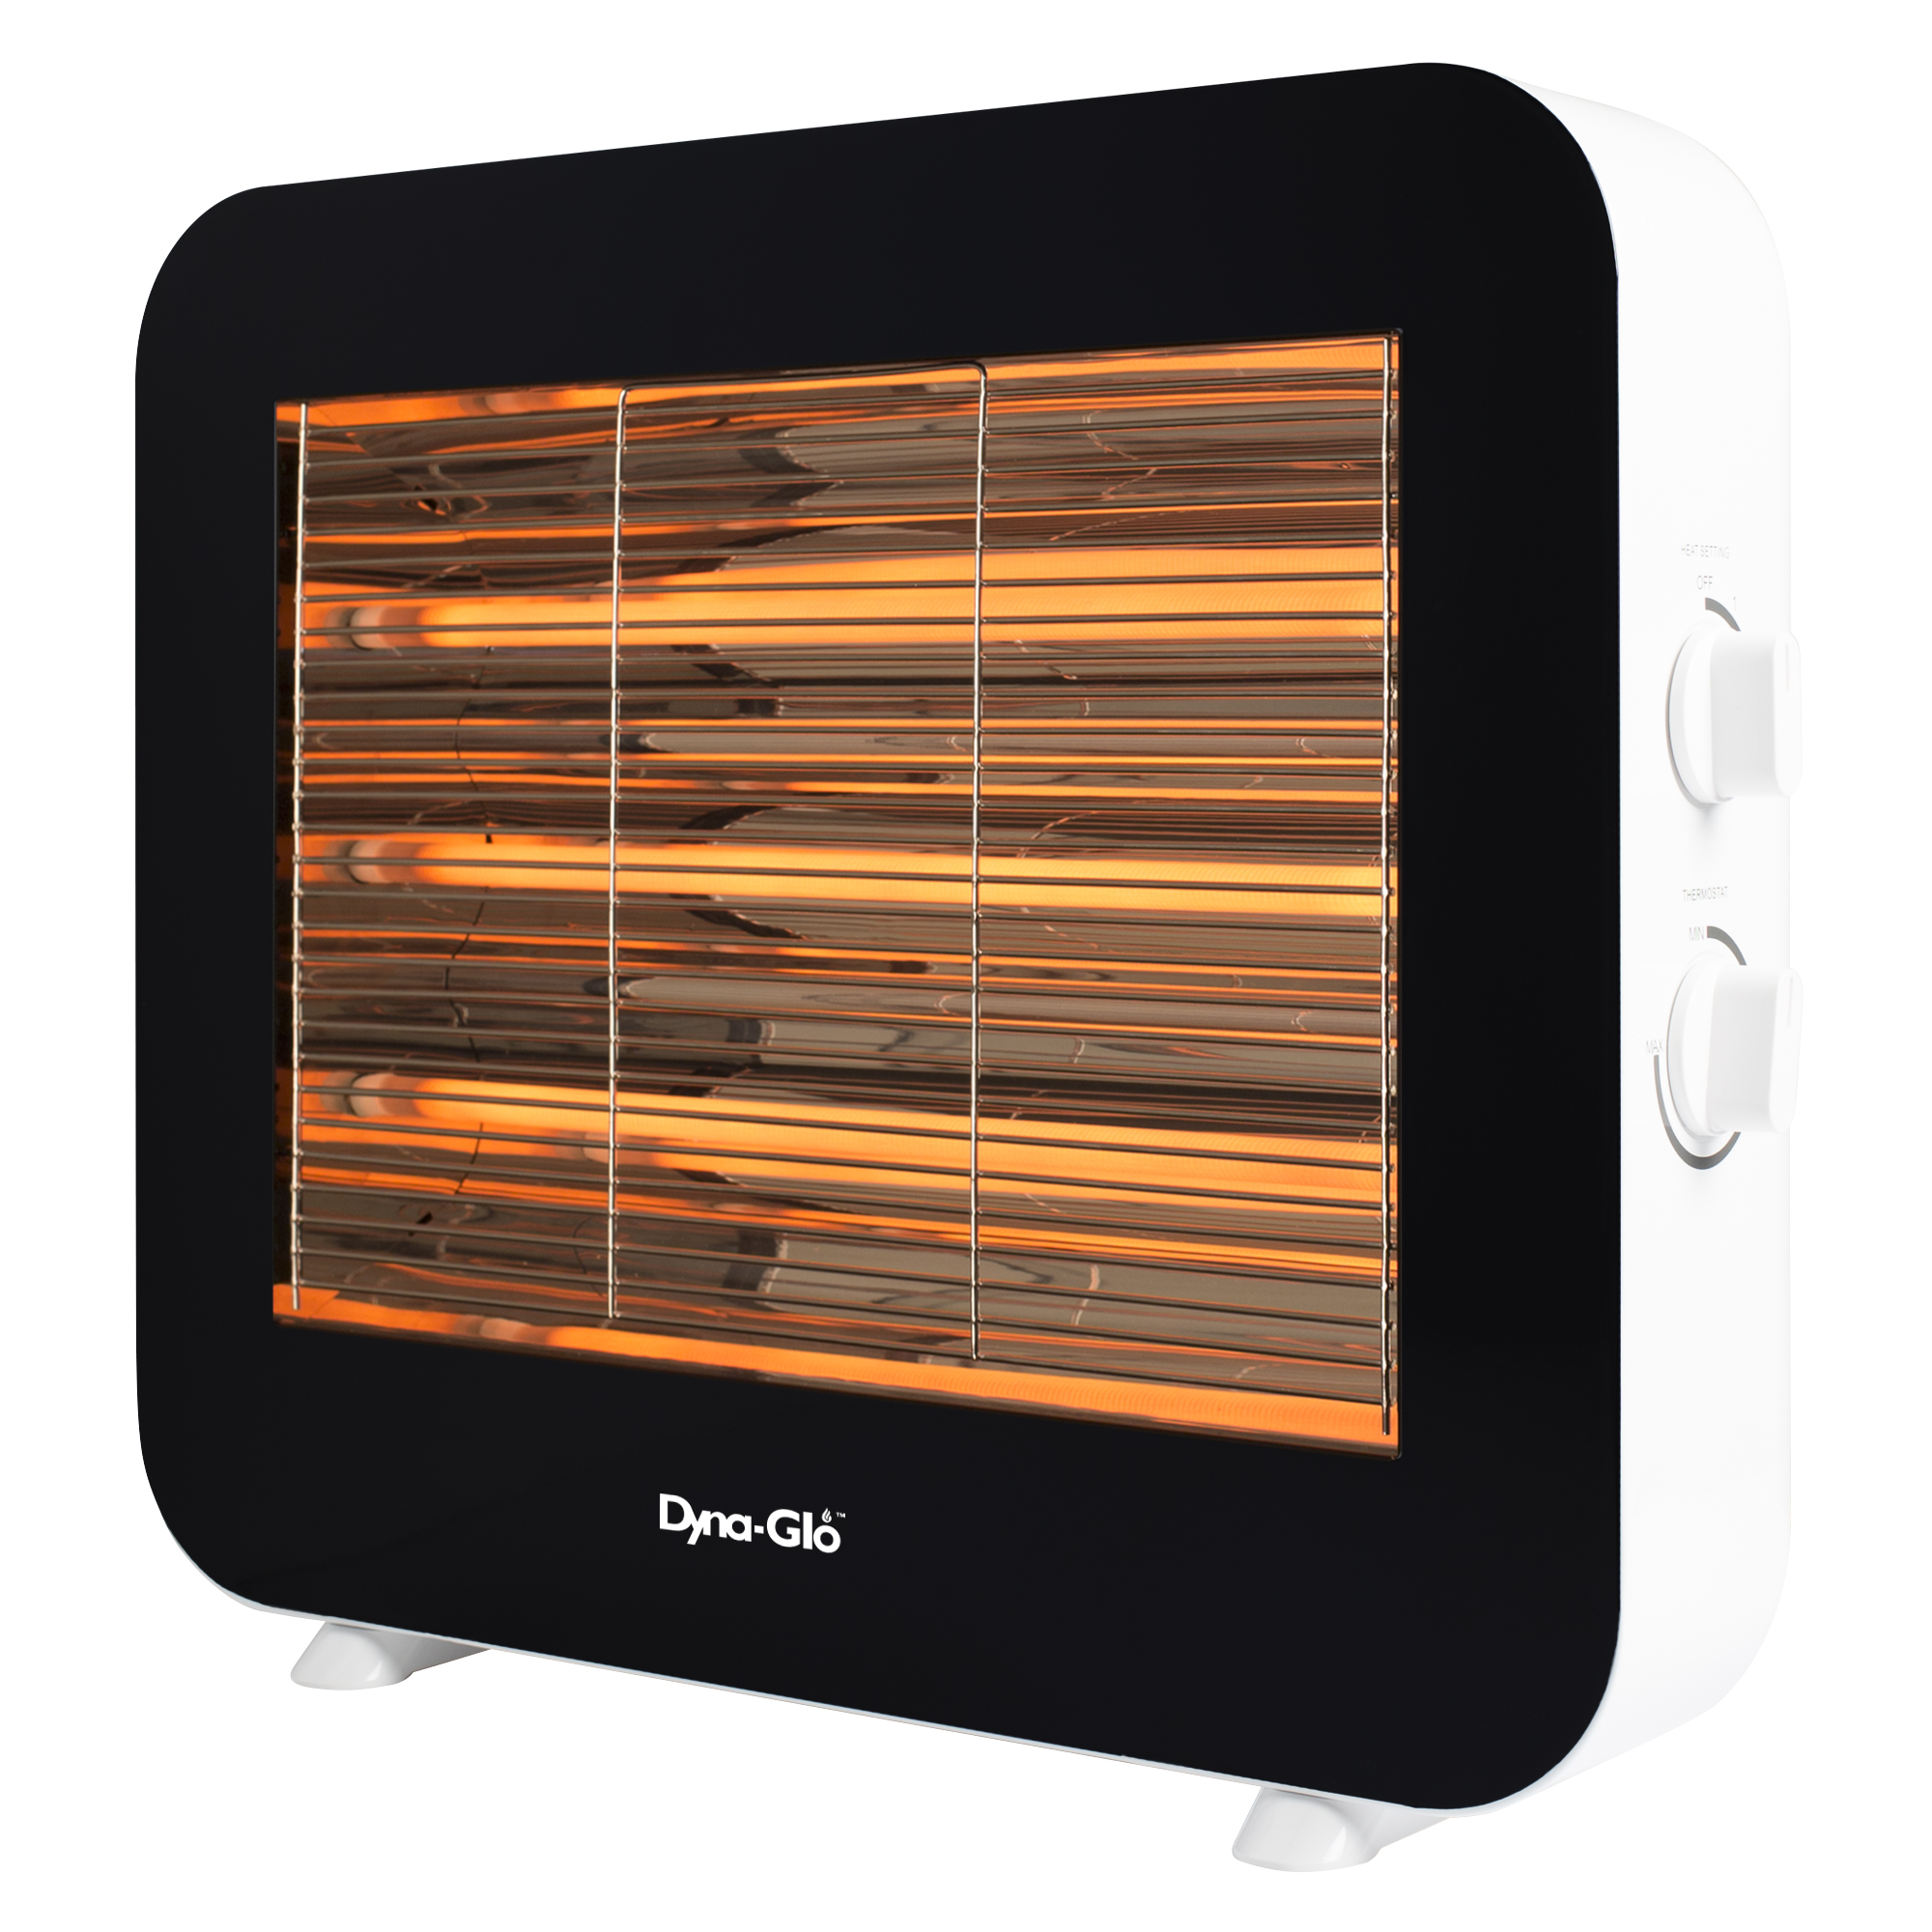 Dyna-Glo EQR1500DG 1500 Watt Infrared Electric Quartz Radiant Heater